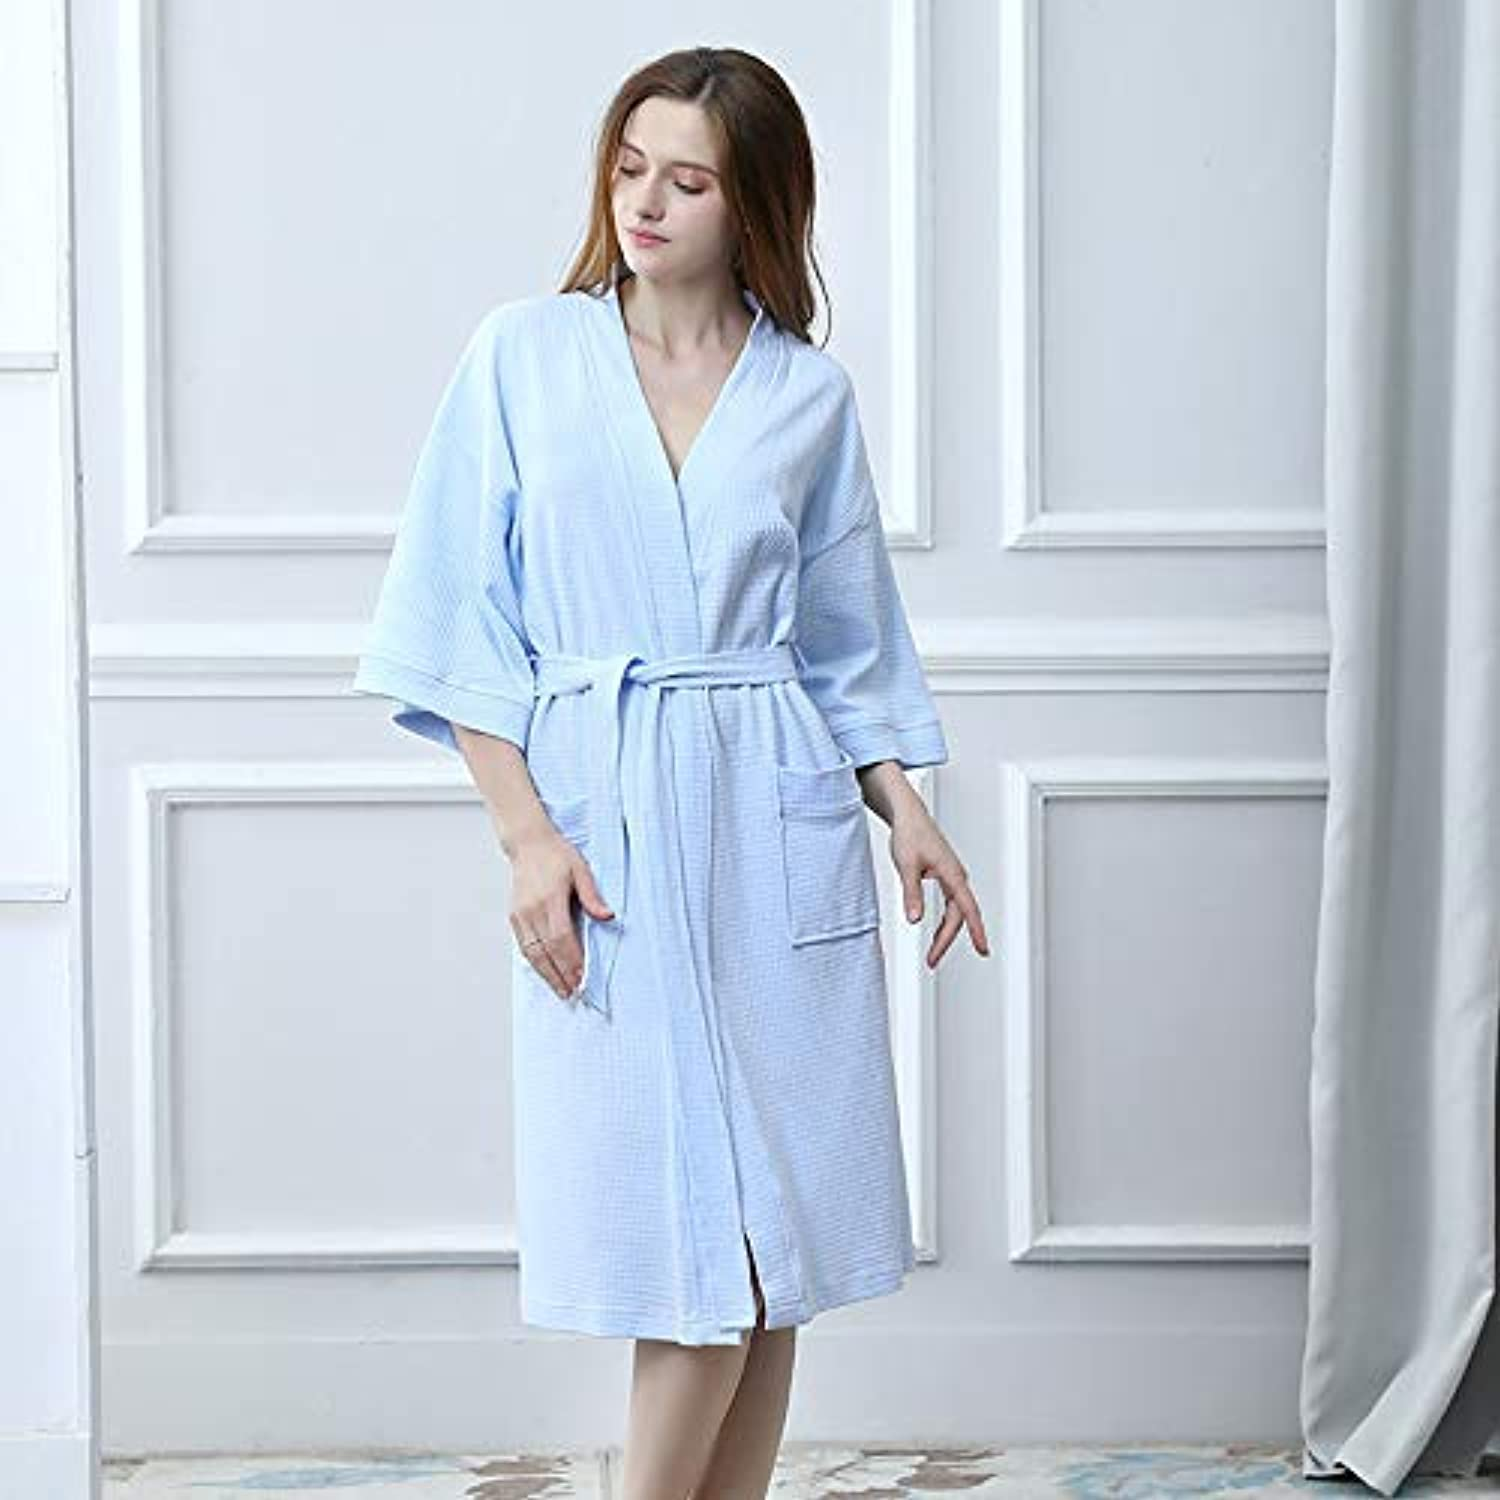 DALAI Summer Pajamas Women's Thin Cardigan Nightgowns Cotton Casual Comfort Bathrobes (color   Sky bluee, Size   XL) (color   Sky bluee, Size   XL)